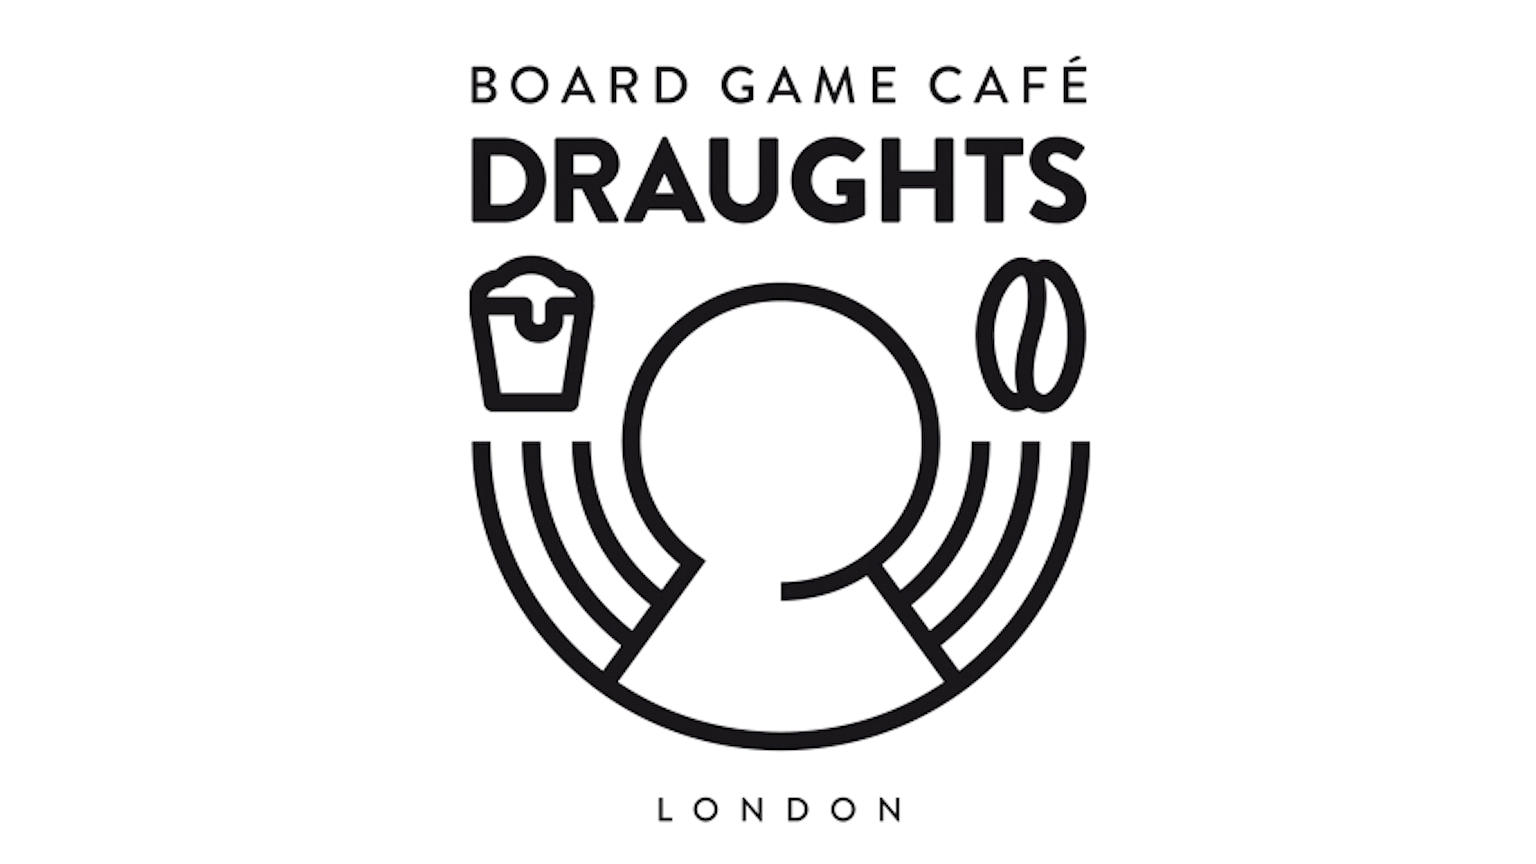 Draughts: London's first board game café by Toby Hamand